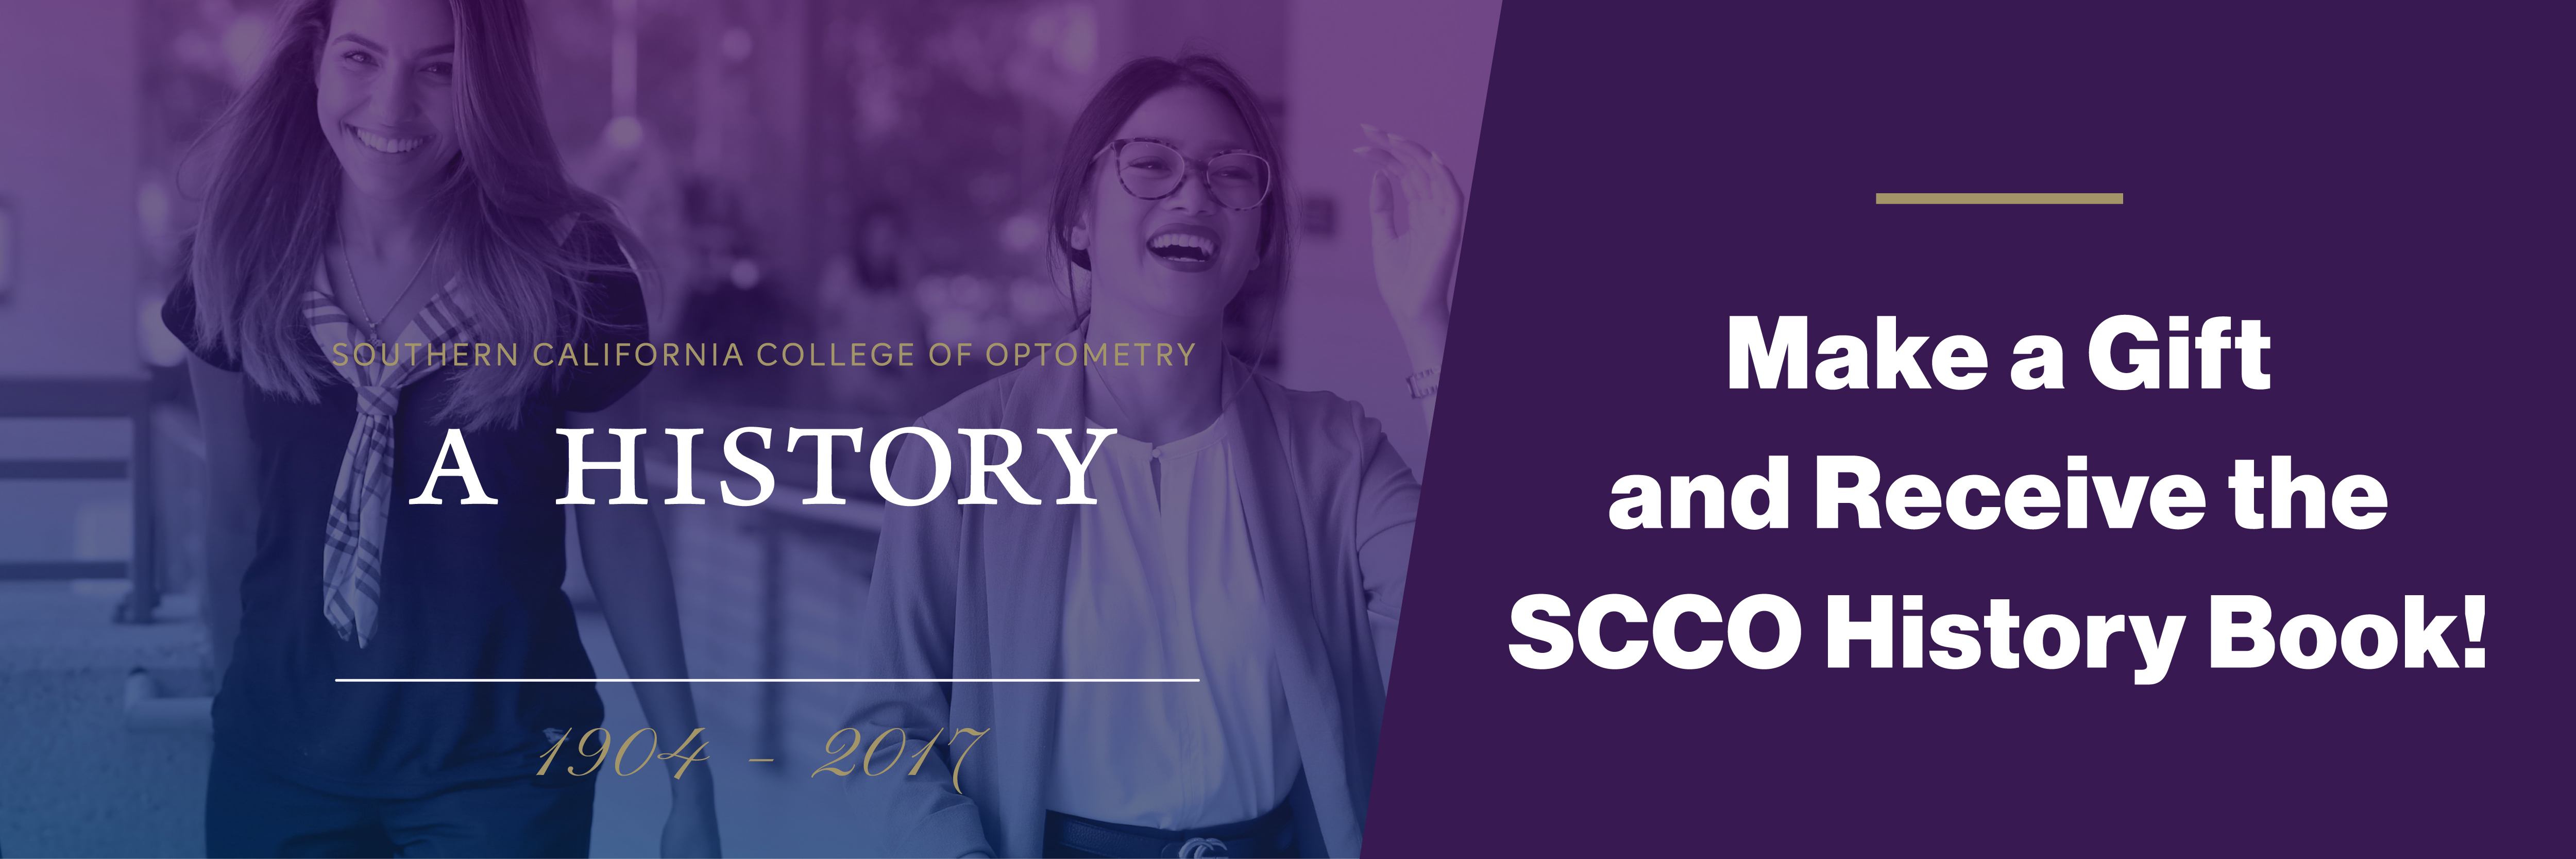 MBKU Give Now and Receive an SCCO History Book for Free